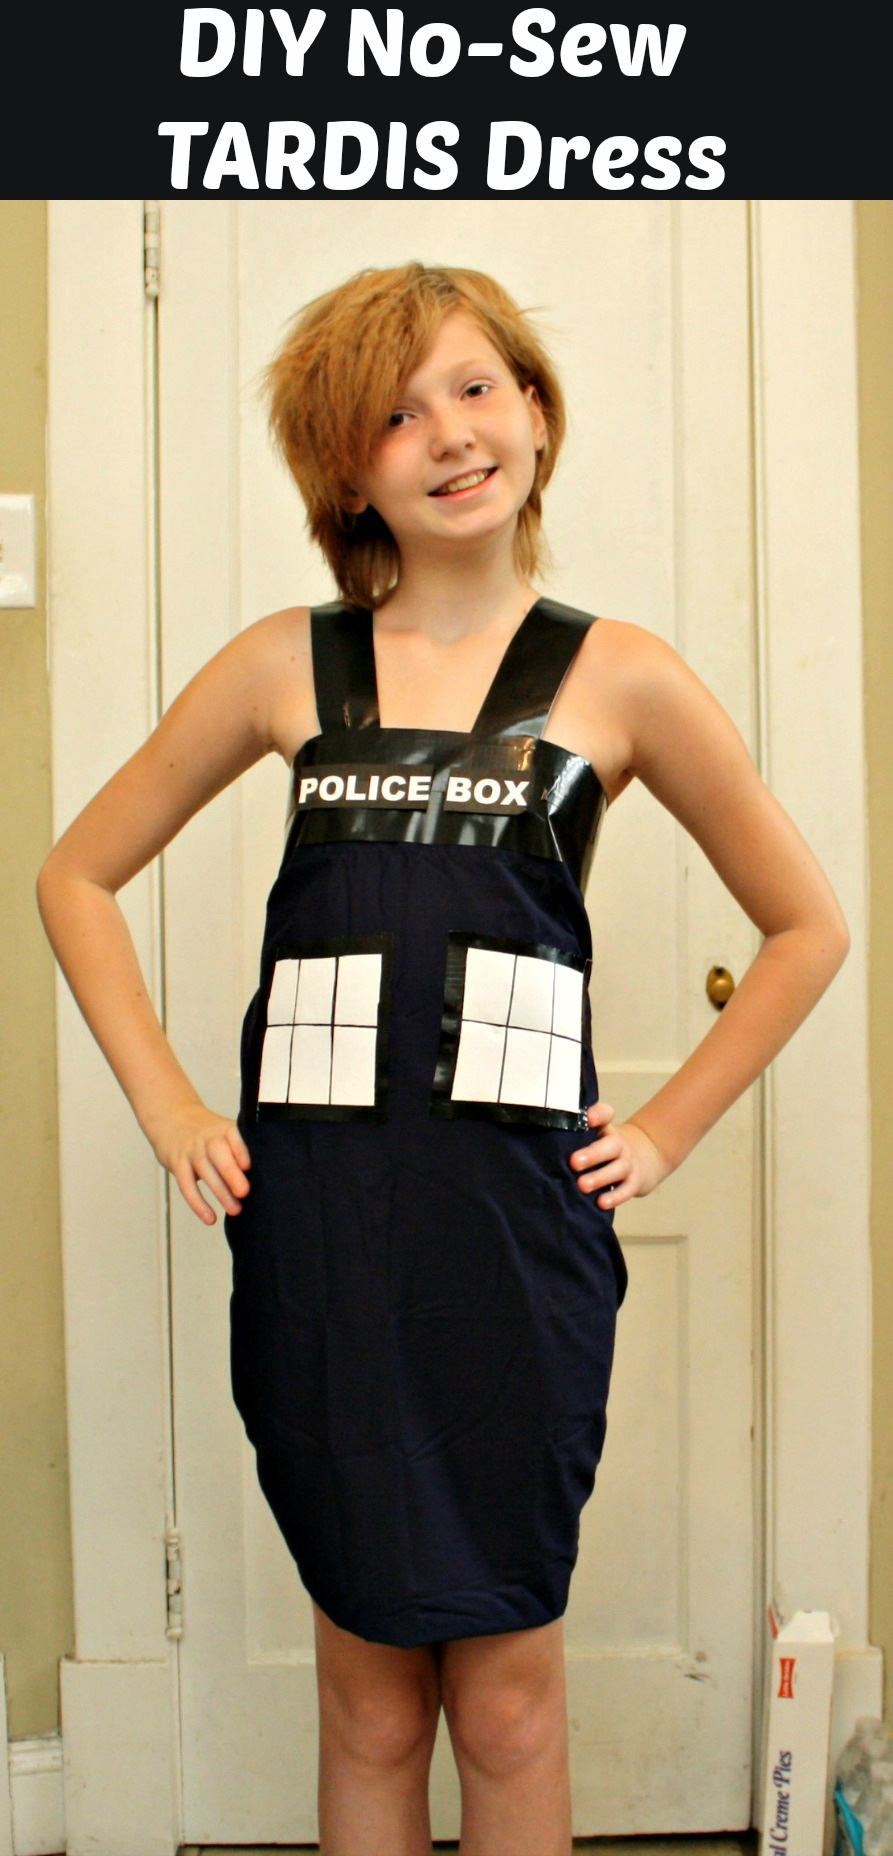 DIY Tardis Costume From Dr. Who (No Sew)